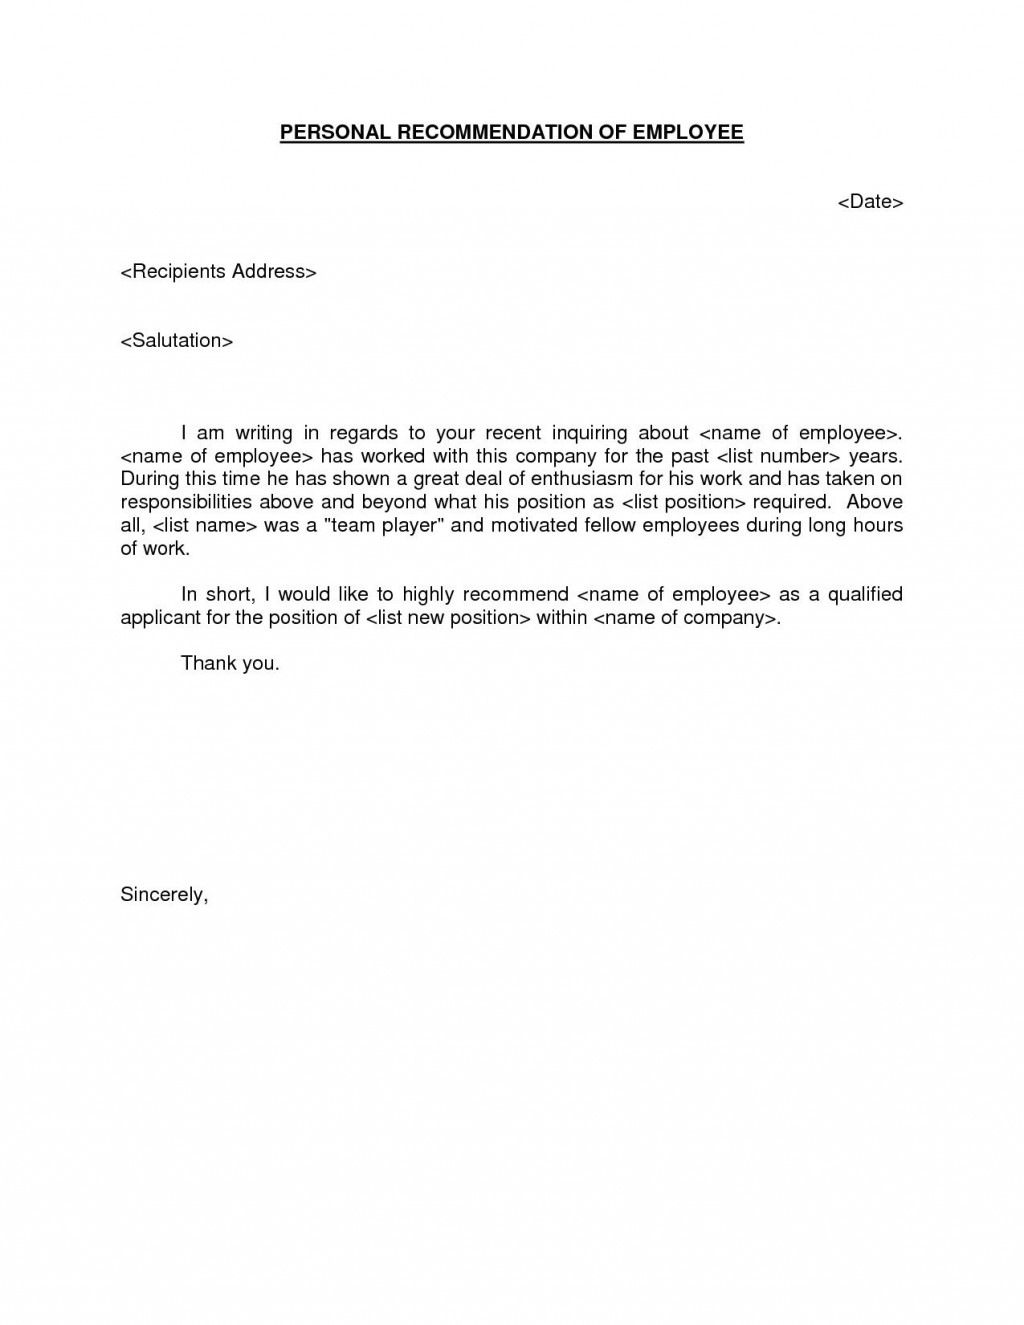 Personal Reference Letter Template from www.addictionary.org